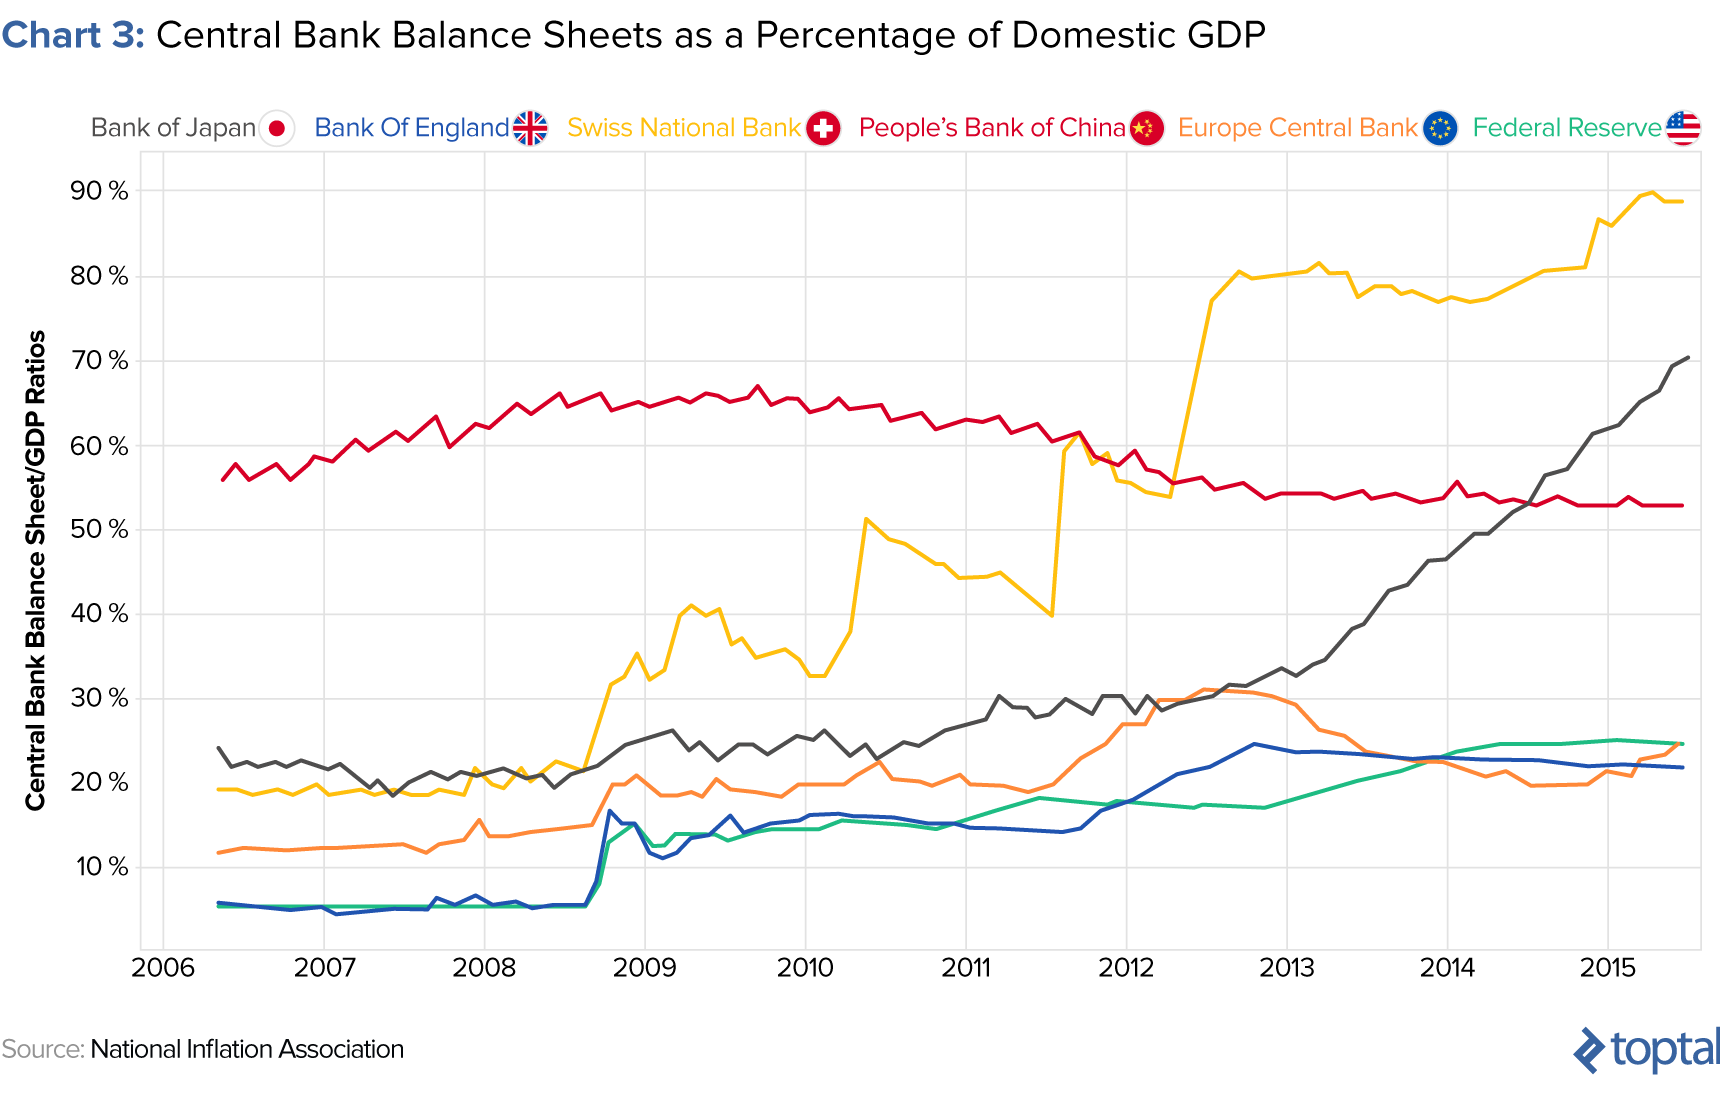 effects of quantitative easing on developed countries' balance sheets